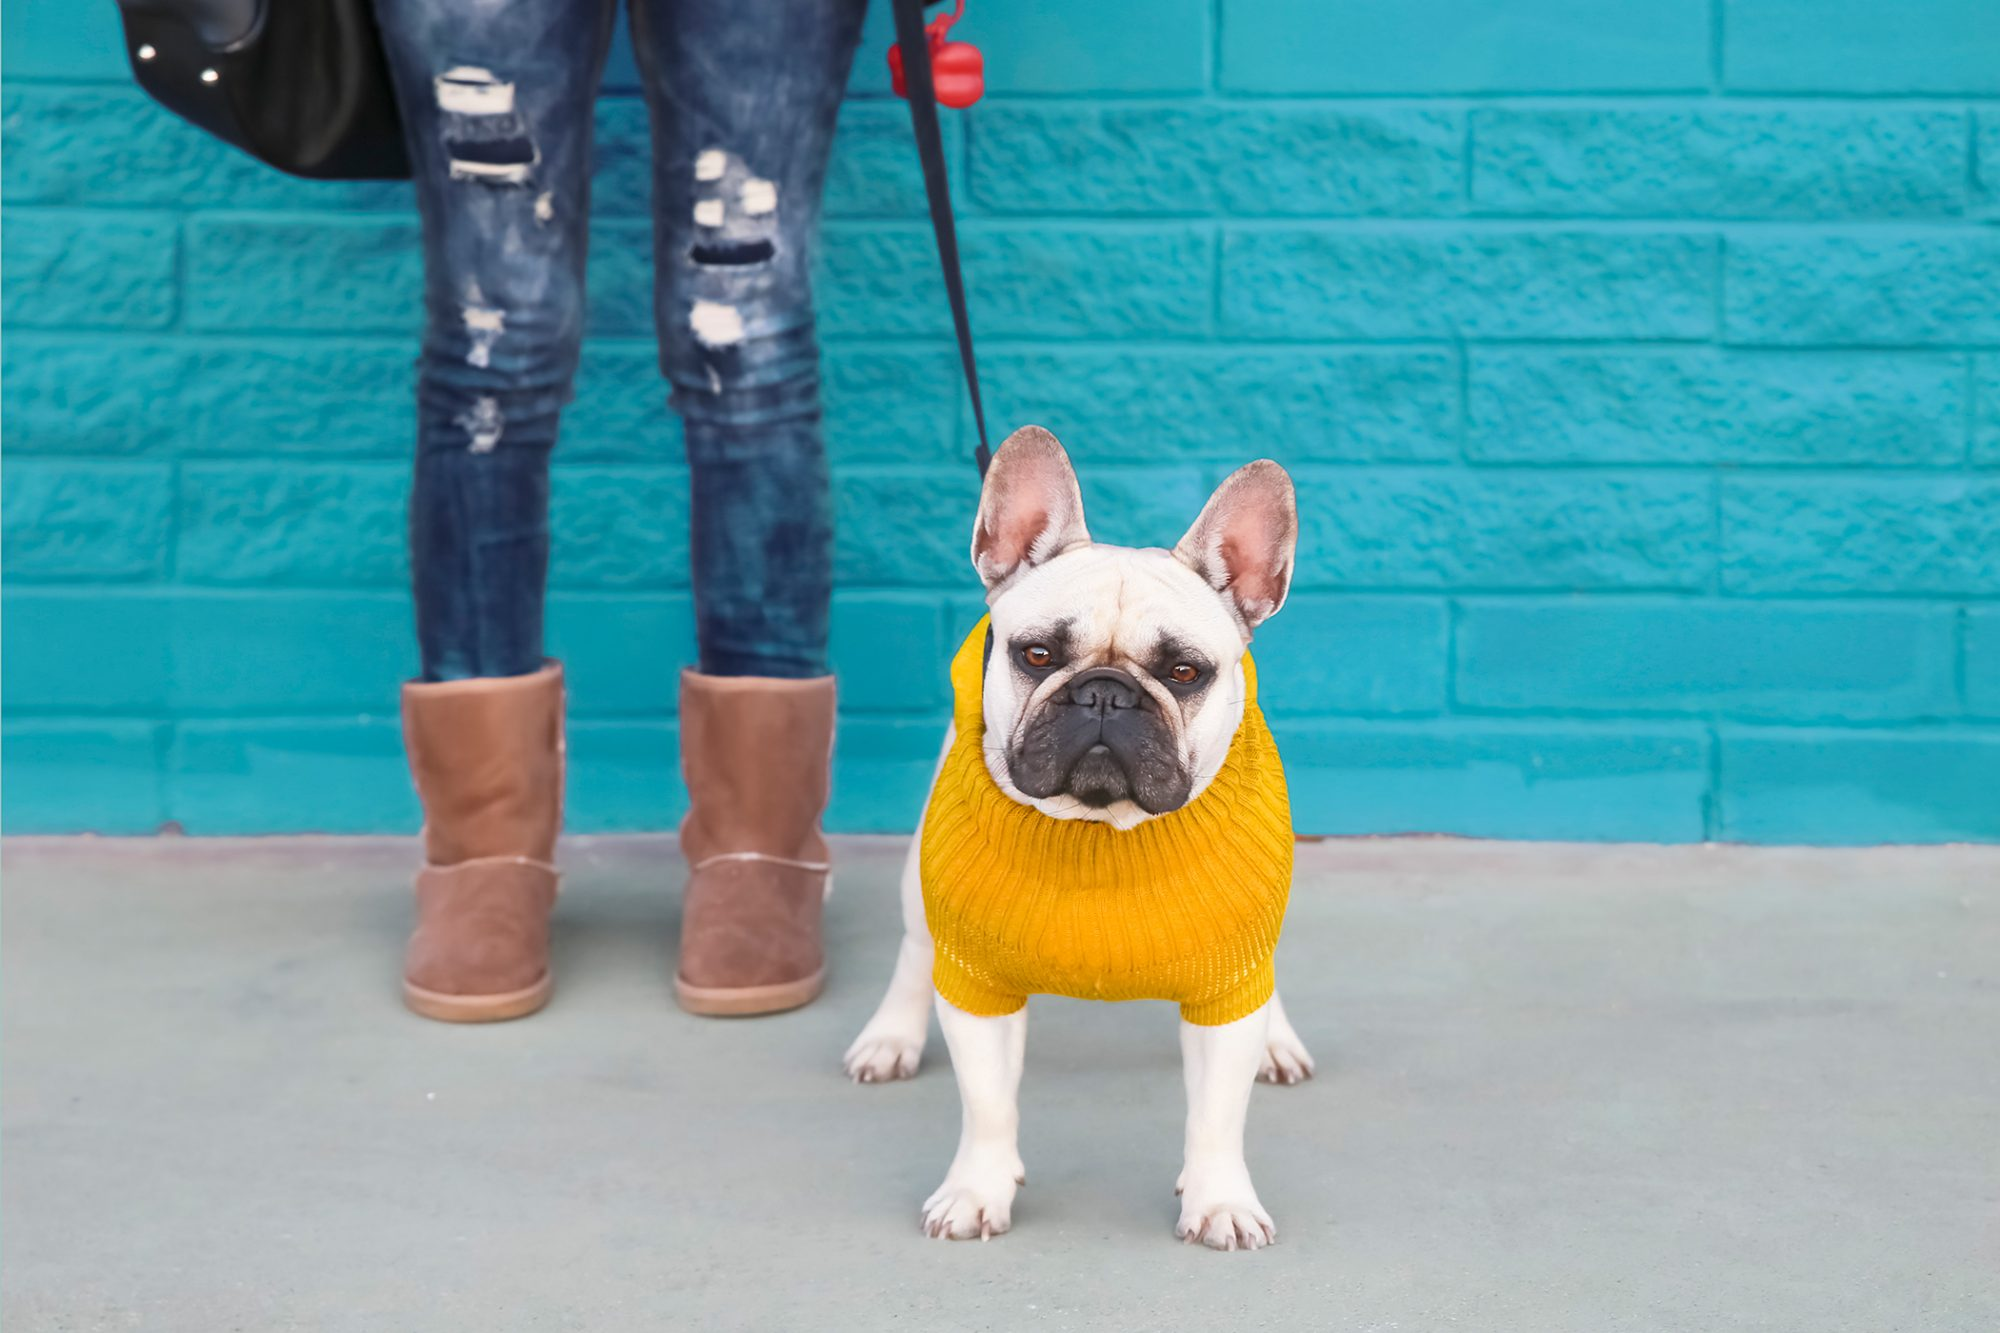 French bulldog in yellow sweater stands next to owner in front of blue brick wall